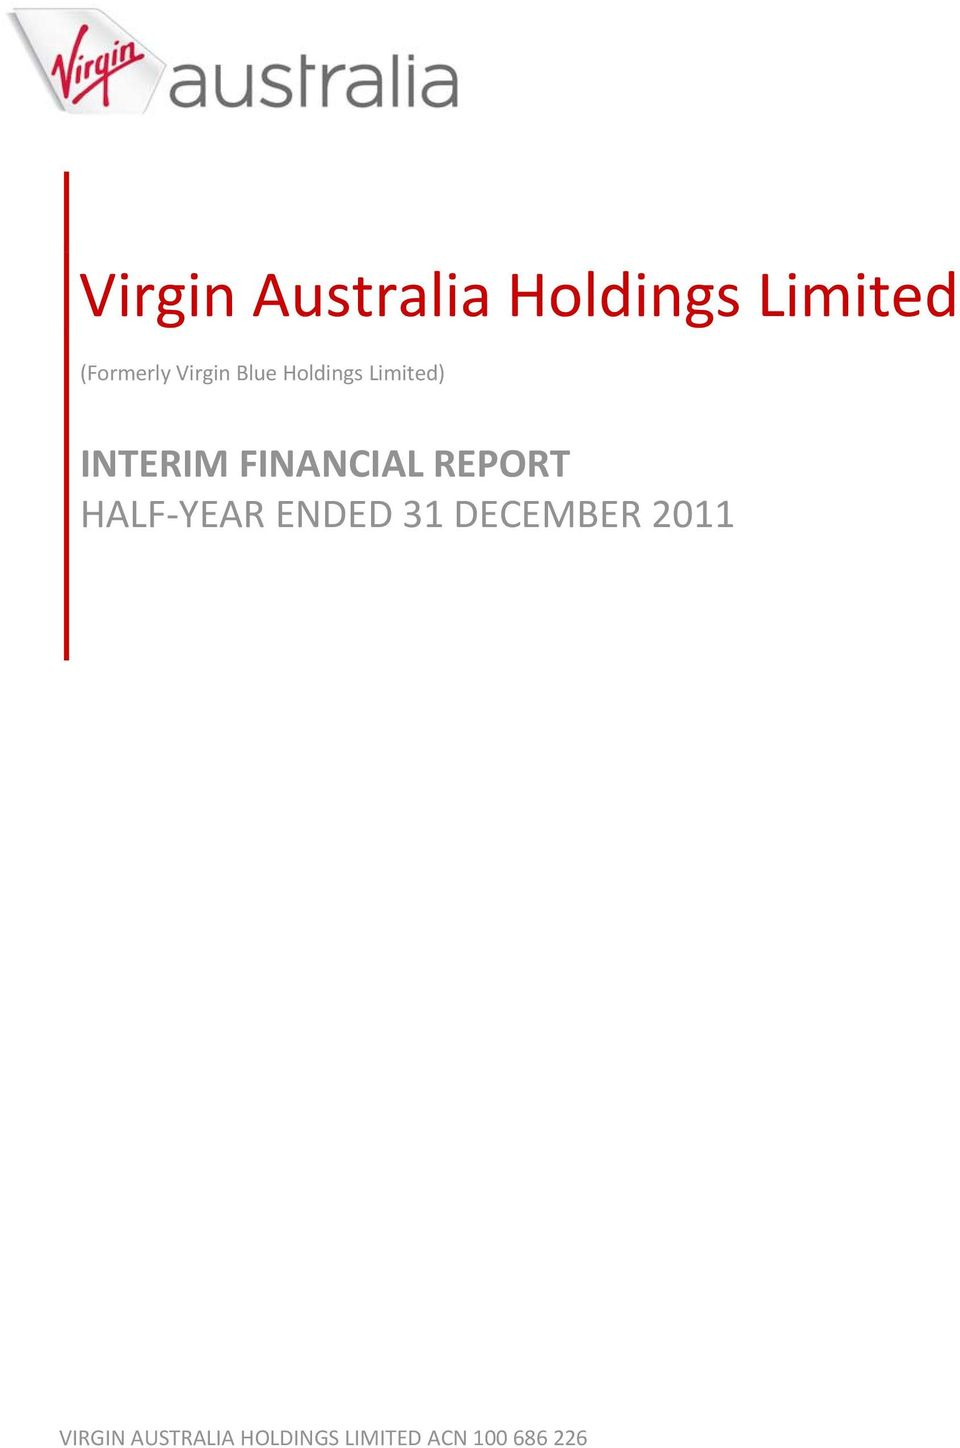 FINANCIAL REPORT HALF YEAR ENDED 31 DECEMBER